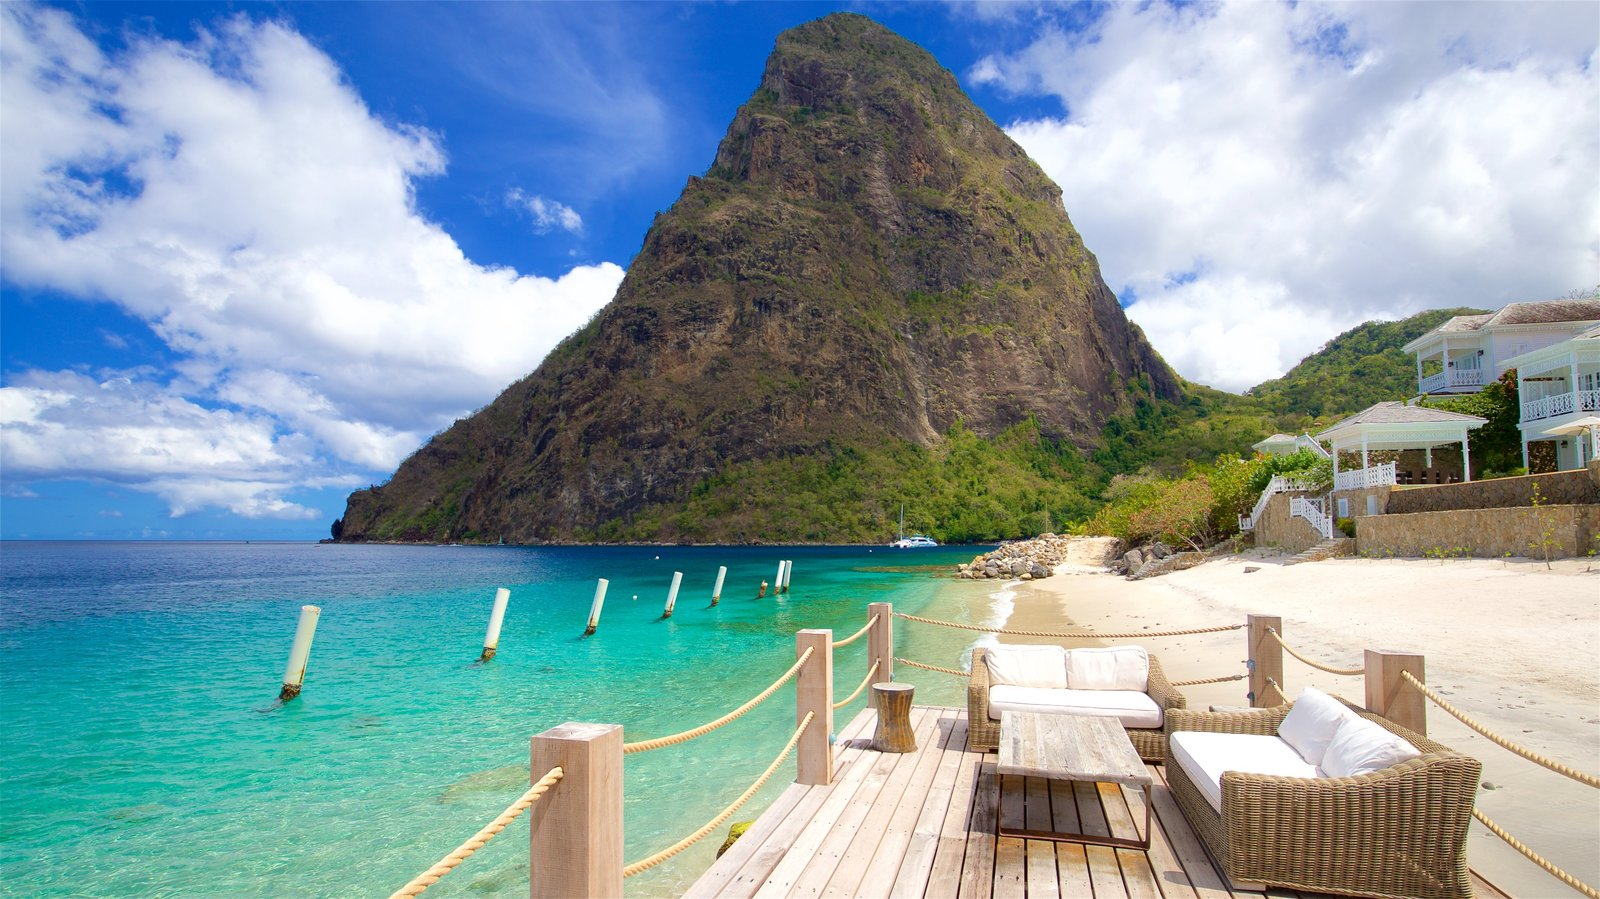 St Lucia Caribbean: St. Lucia Pictures: View Photos & Images Of St. Lucia